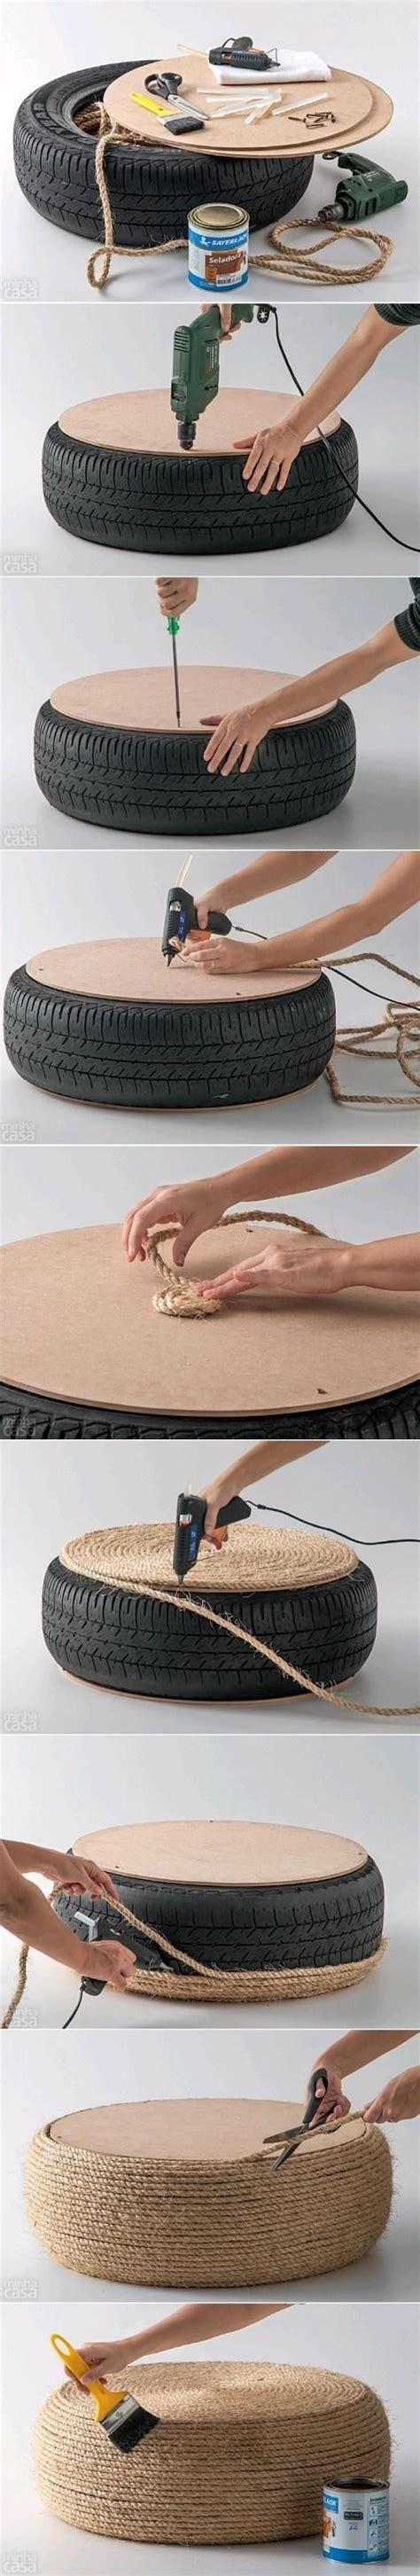 rope tire ottoman how to turn an old tire into a stylish nautical inspired